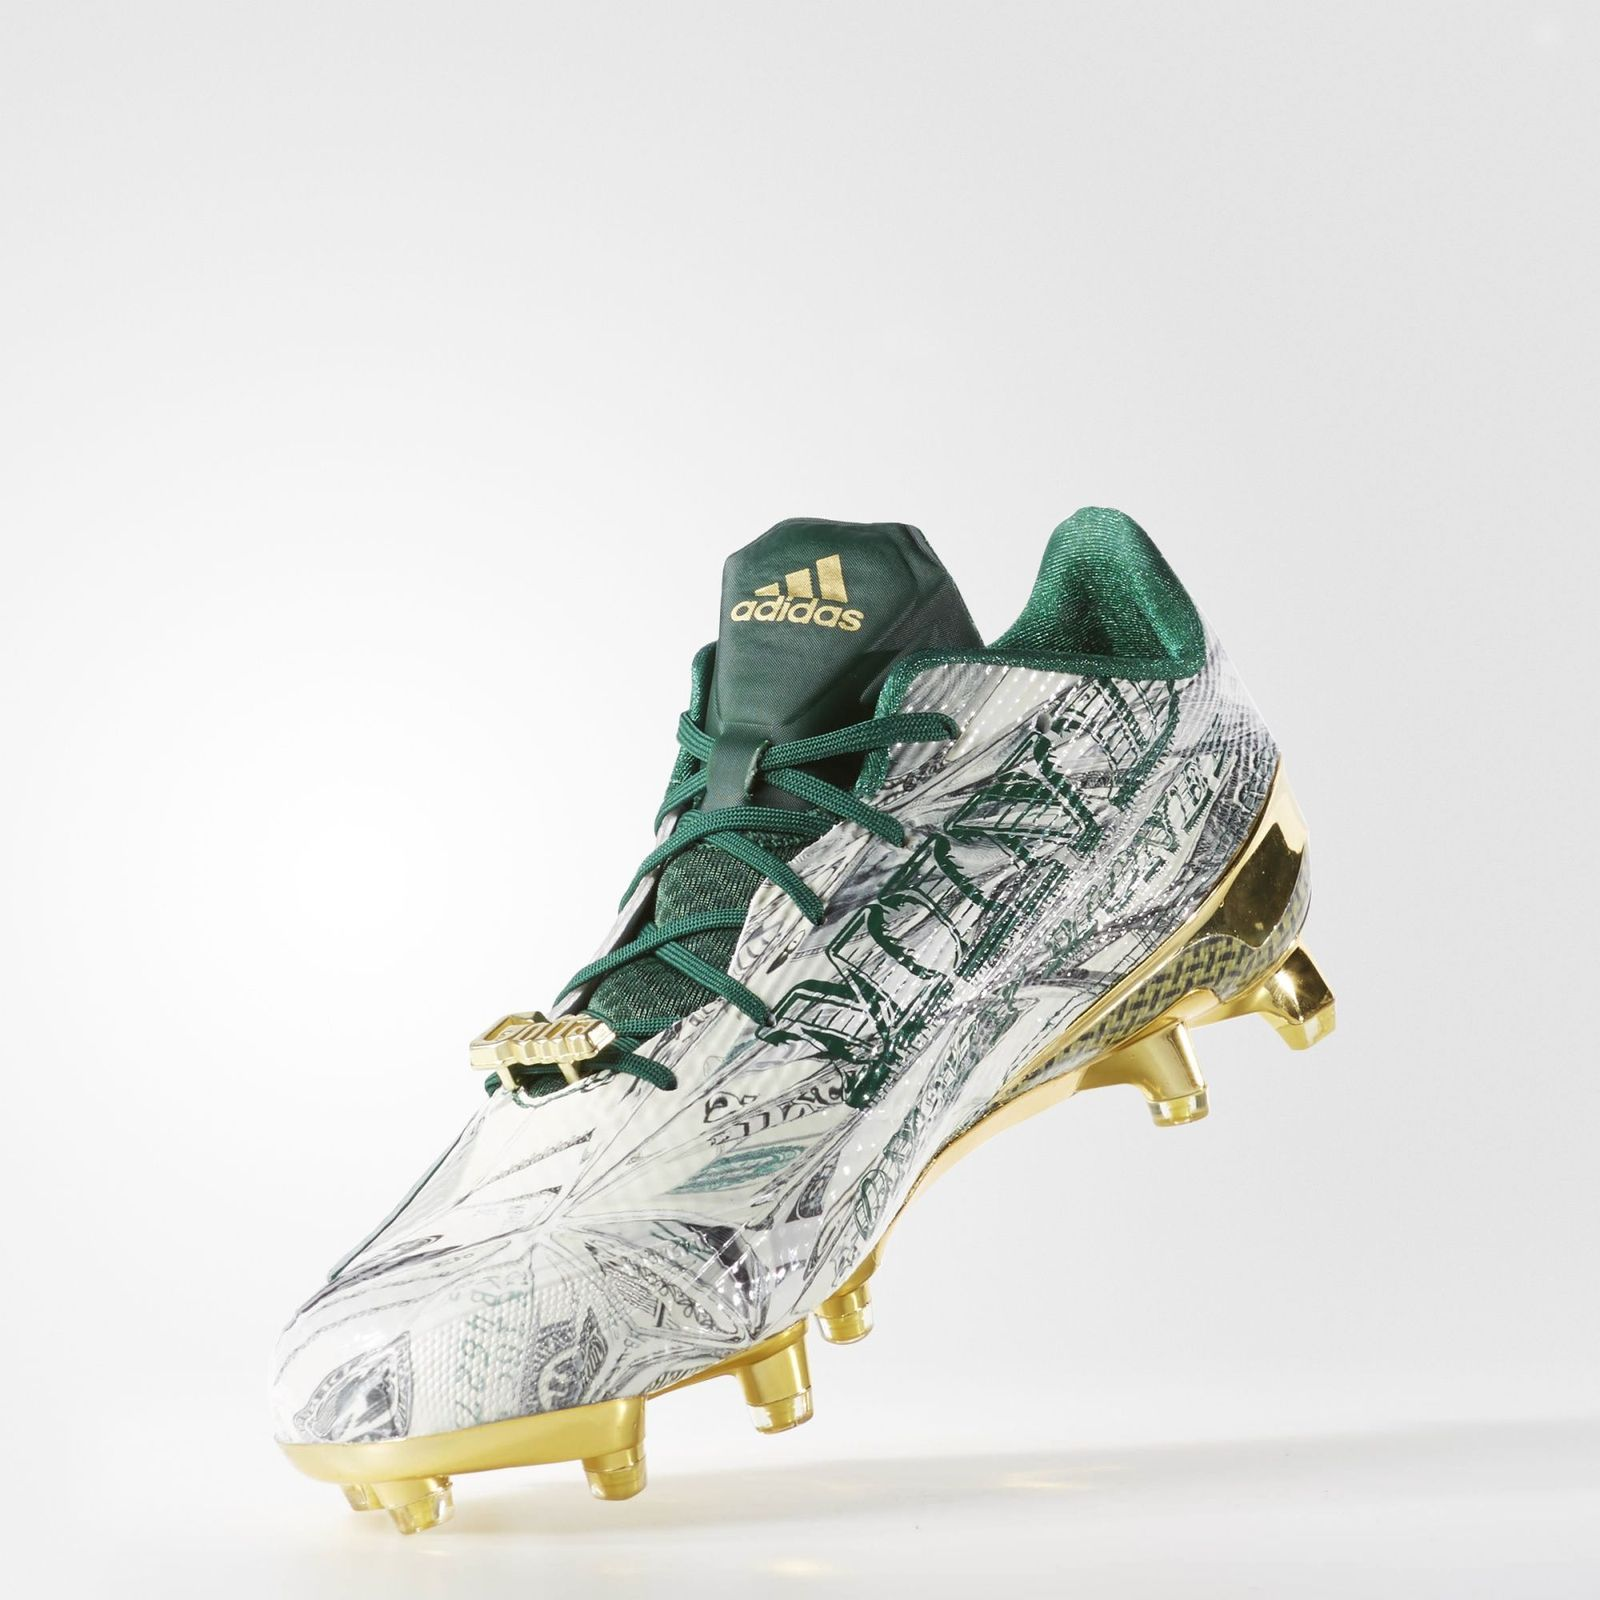 Can anyone explain these snoop doggbranded adidas cleats